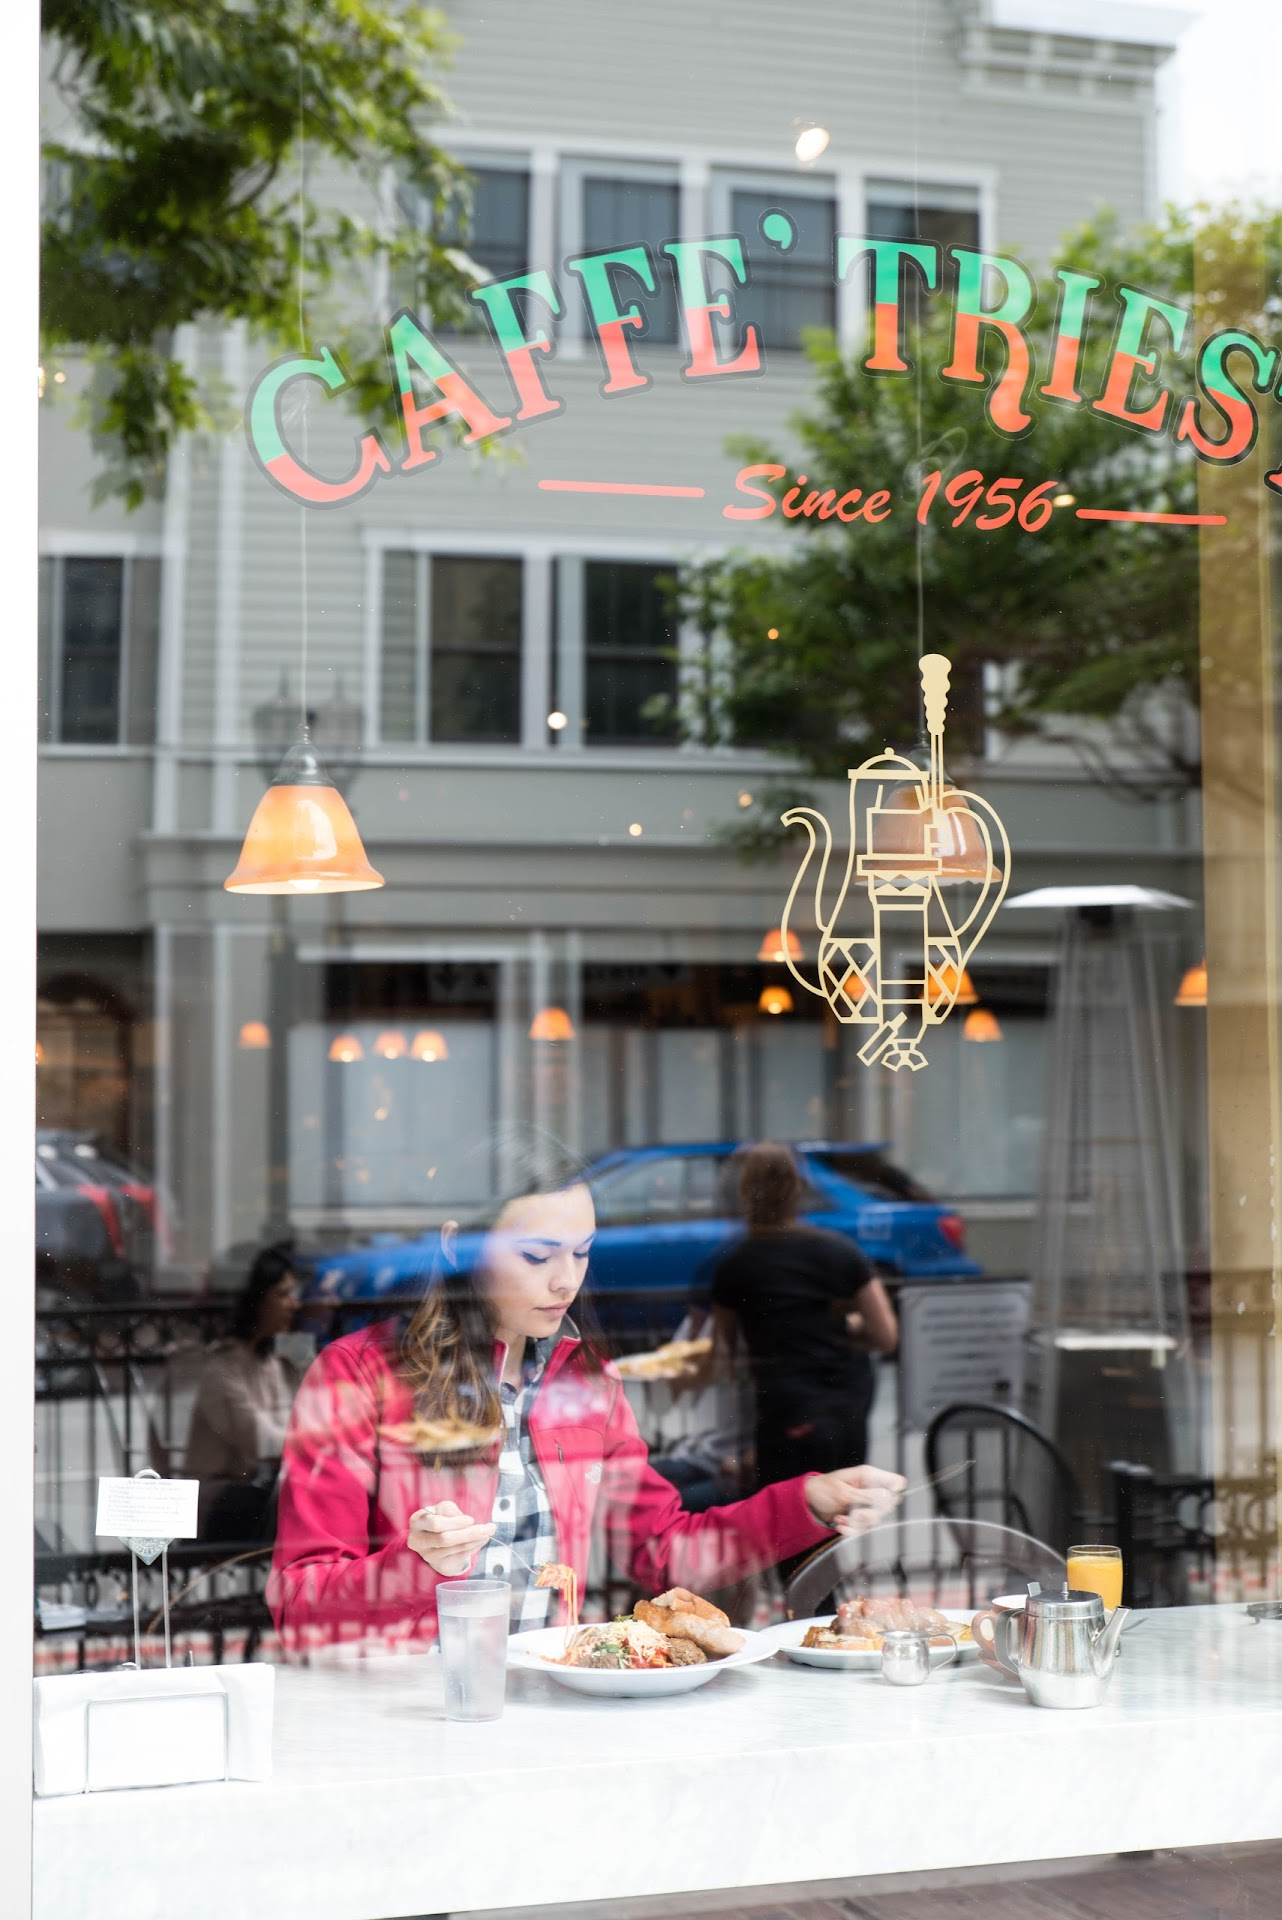 monterey best places to eat, restaurants, caffe trieste review, best italian food in san francisco bay area